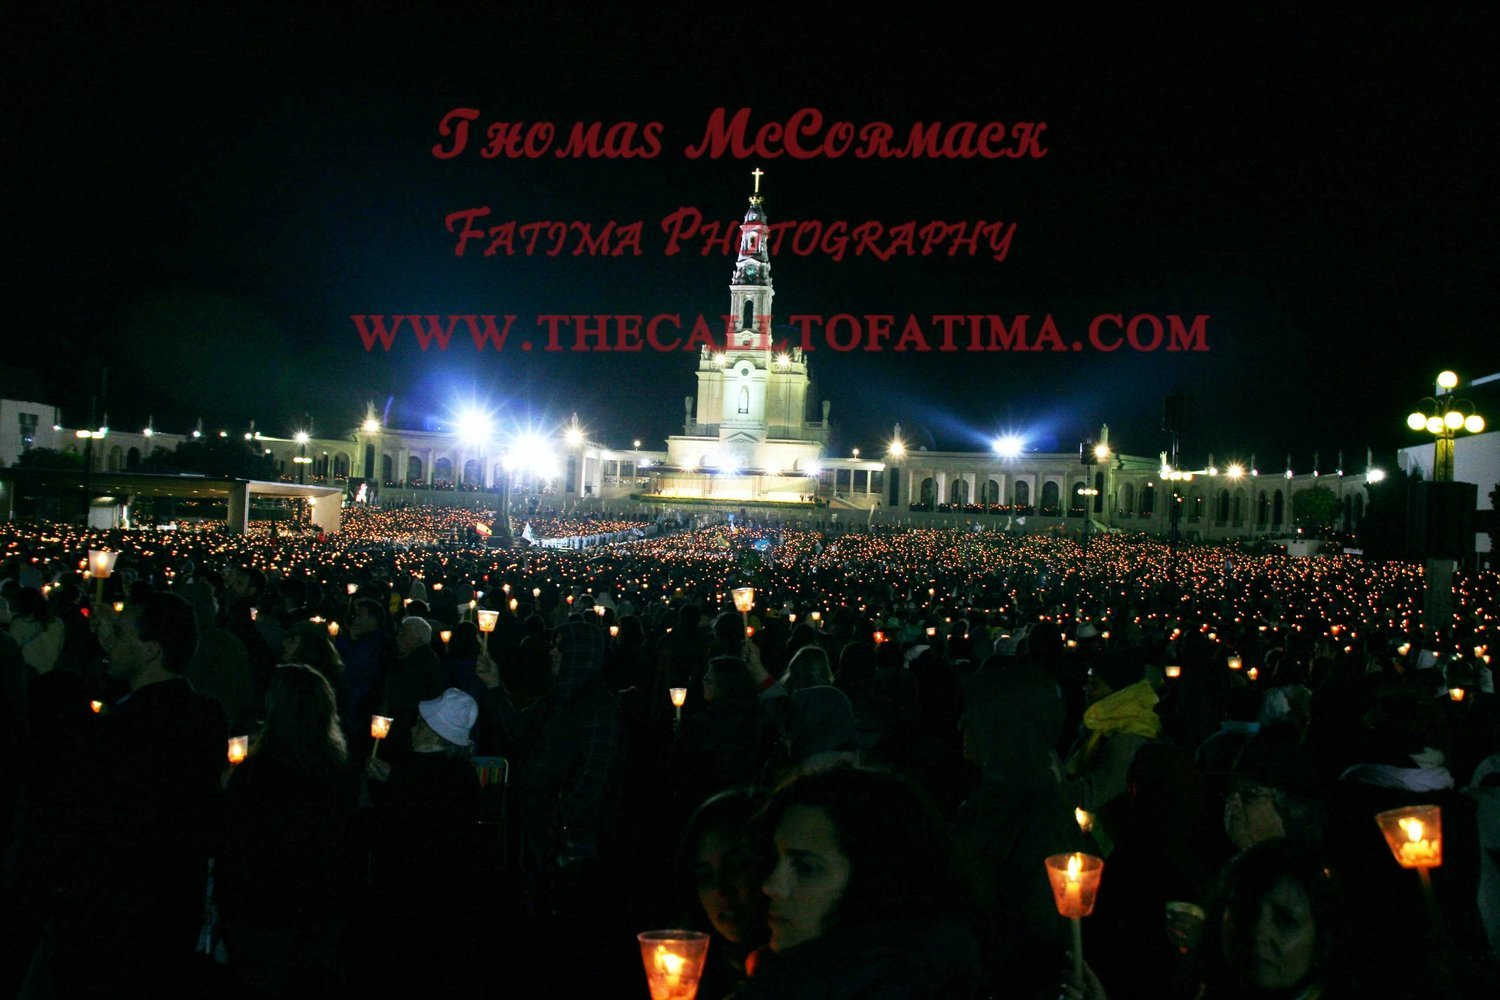 Fatima Shrine photograph A4 print